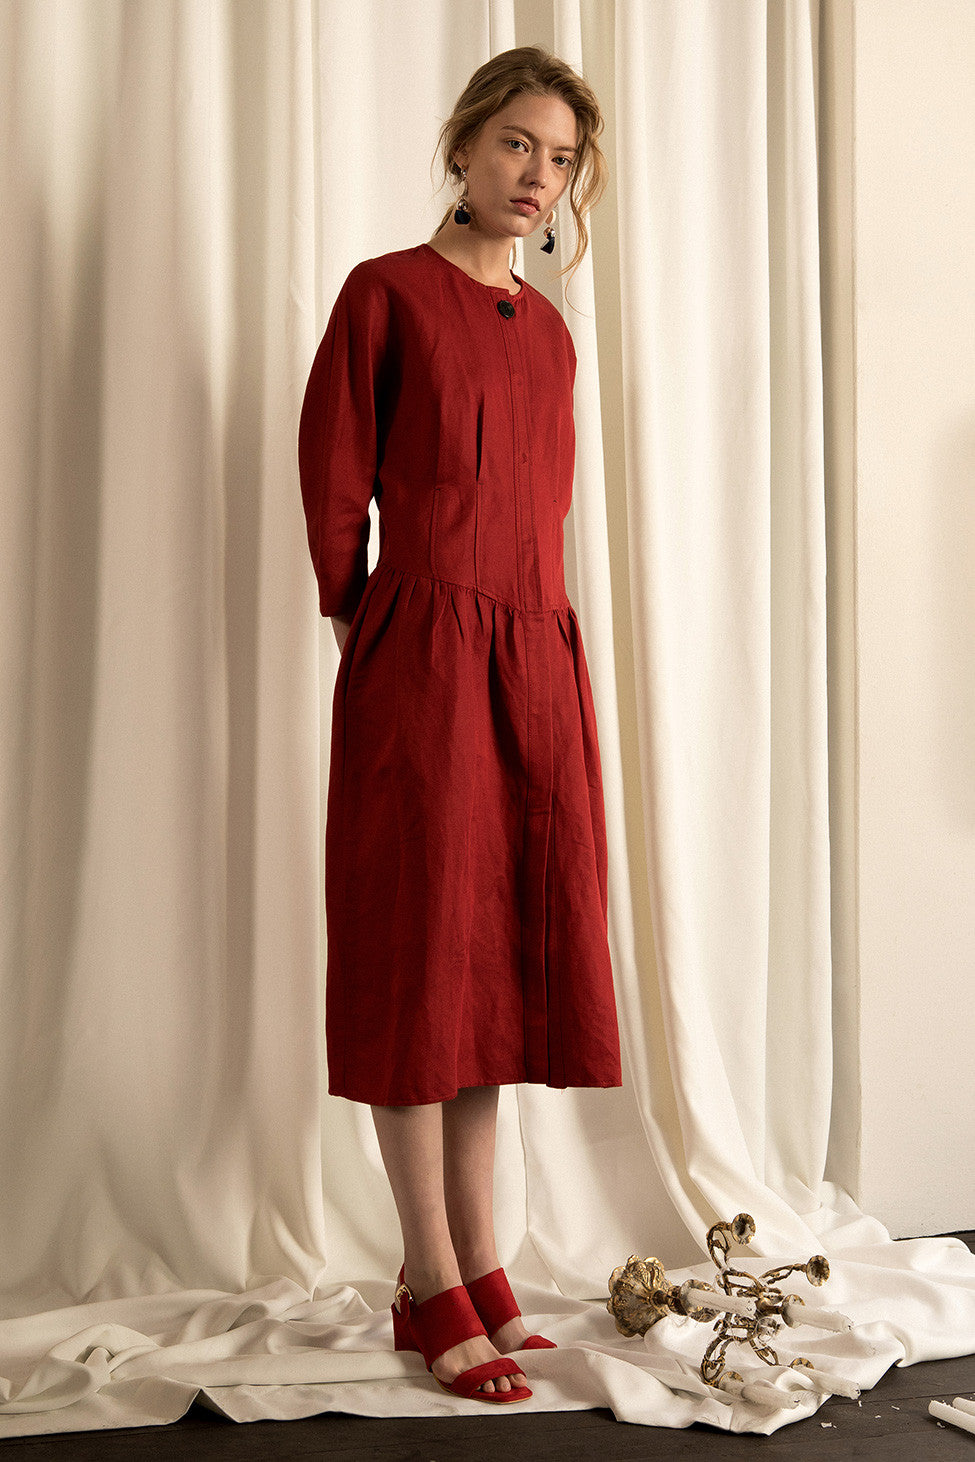 The Carmen Dress in Oxblood, featuring round neckline, concealed full button placket, straight yoke with exaggerated center pleat.